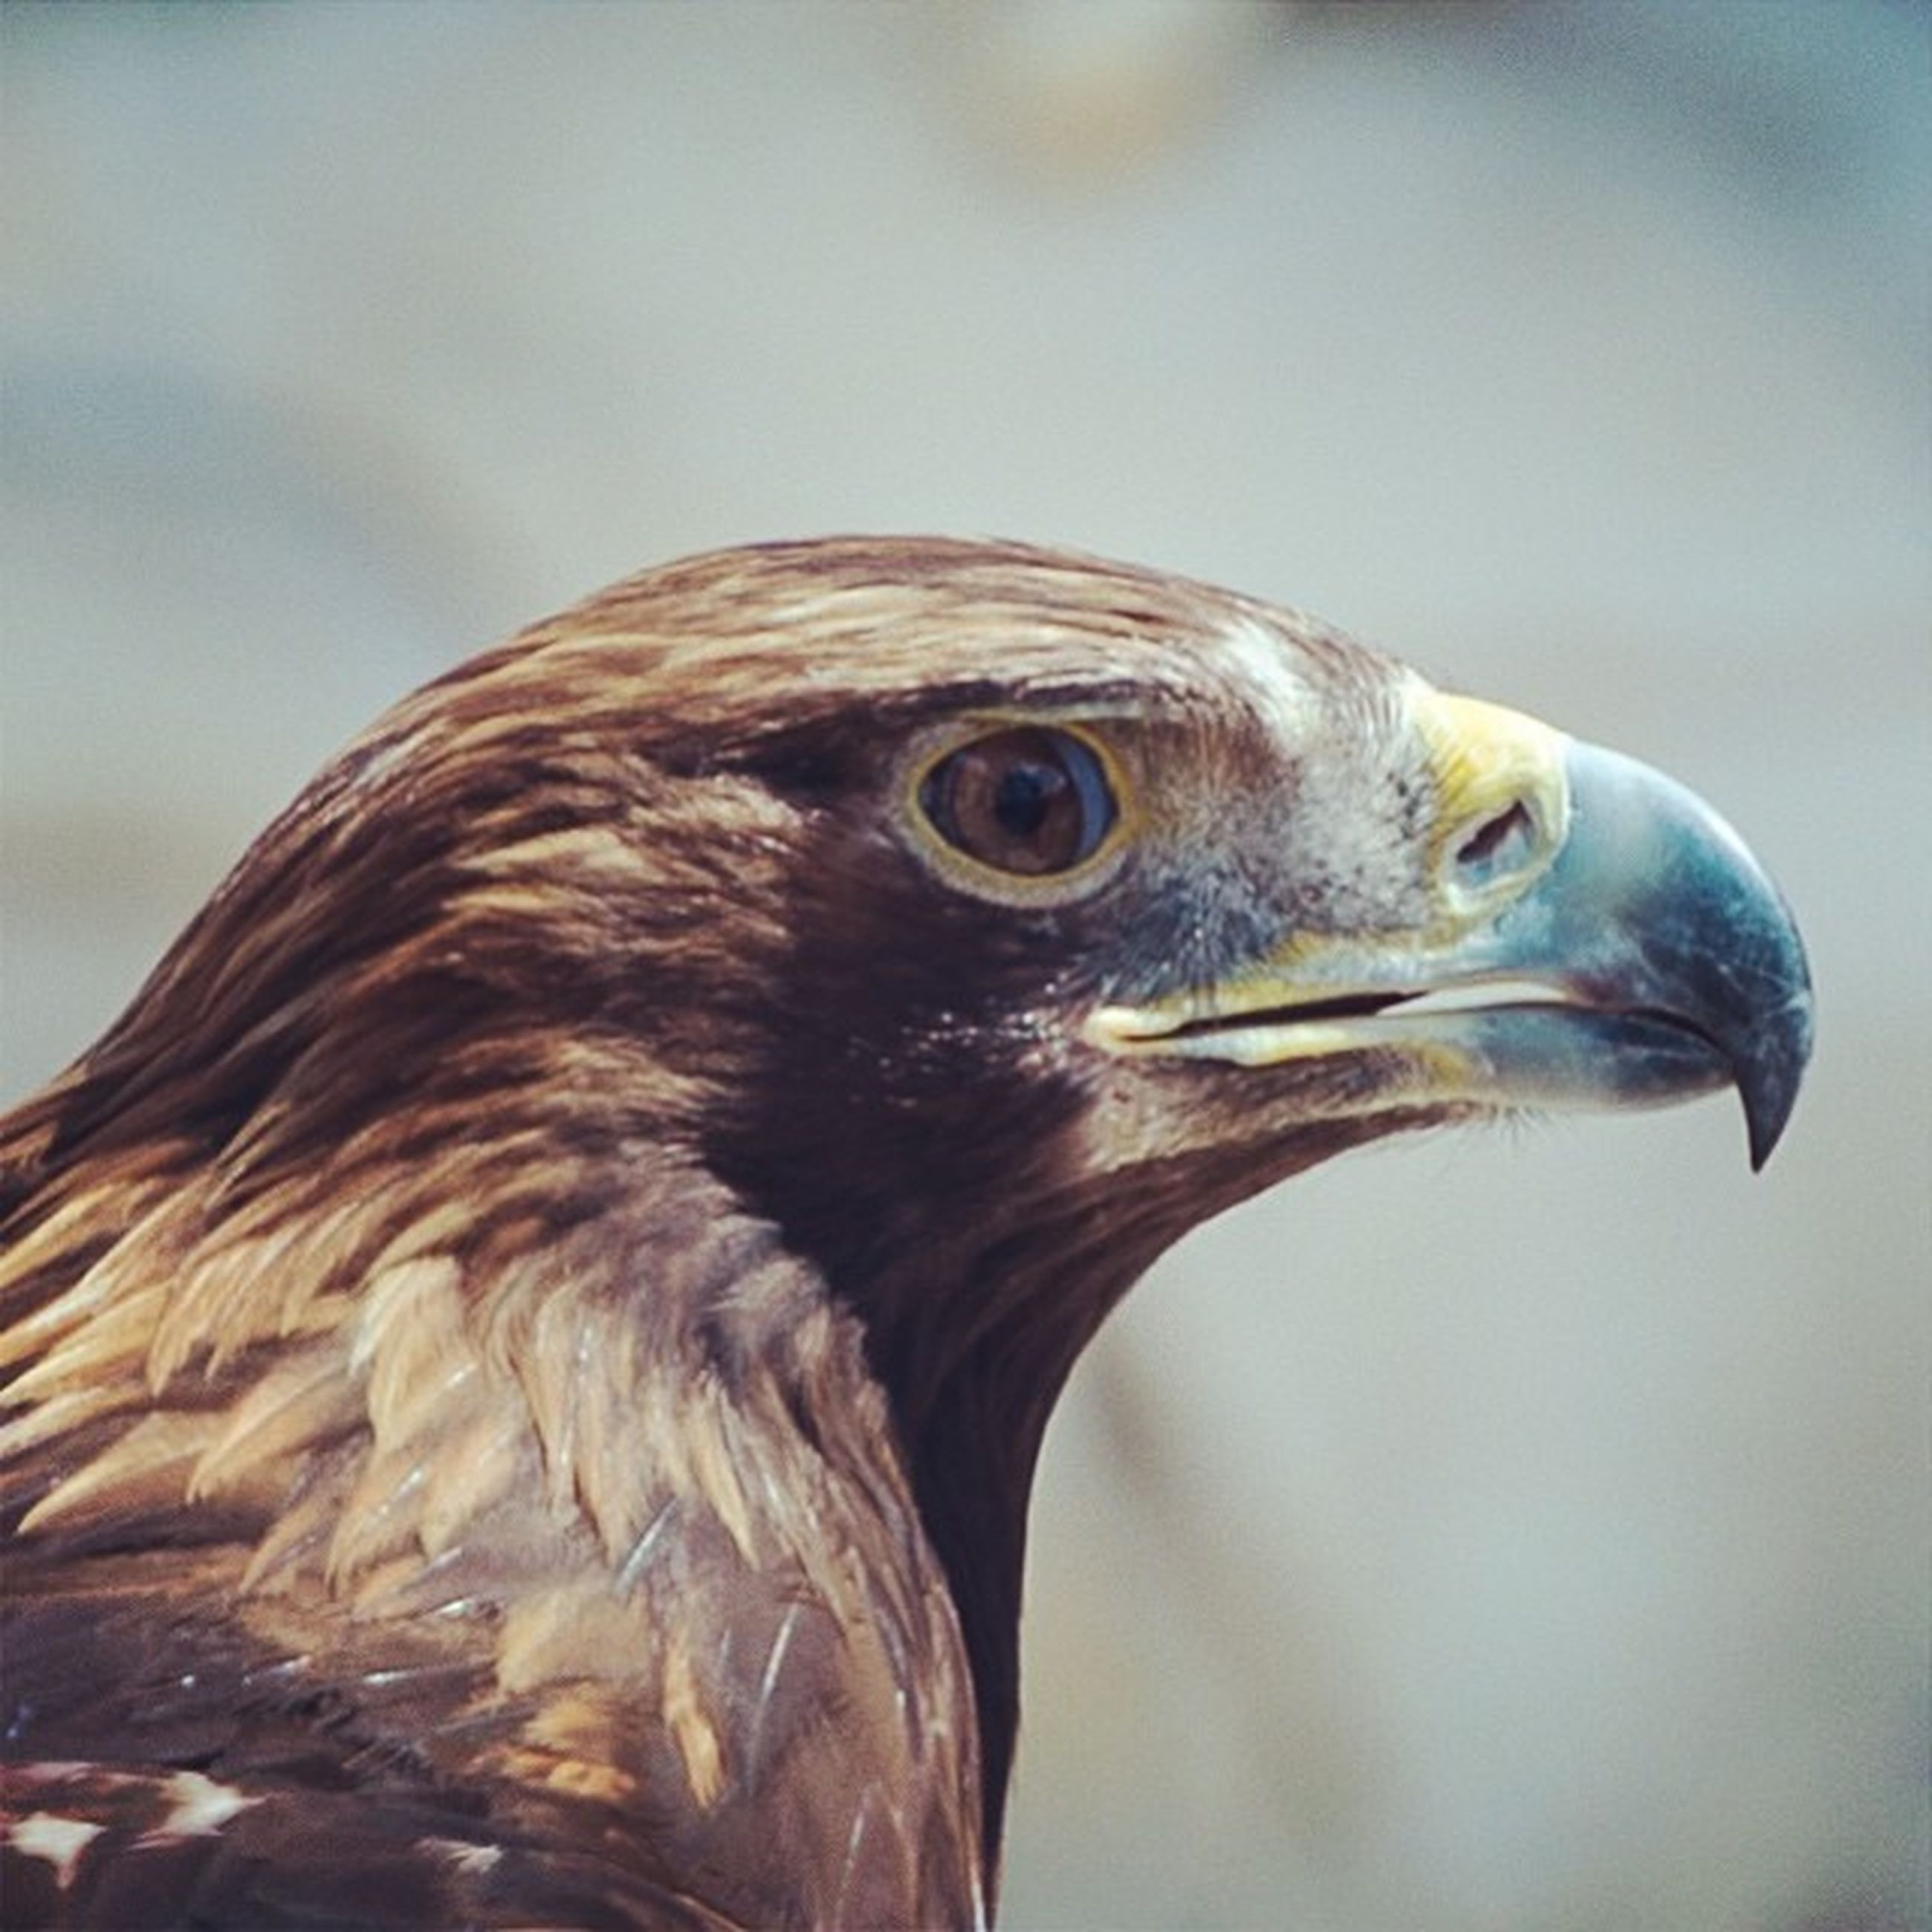 animal themes, one animal, bird, animals in the wild, wildlife, beak, close-up, focus on foreground, animal head, animal body part, bird of prey, nature, side view, animal eye, looking away, outdoors, day, no people, zoology, feather